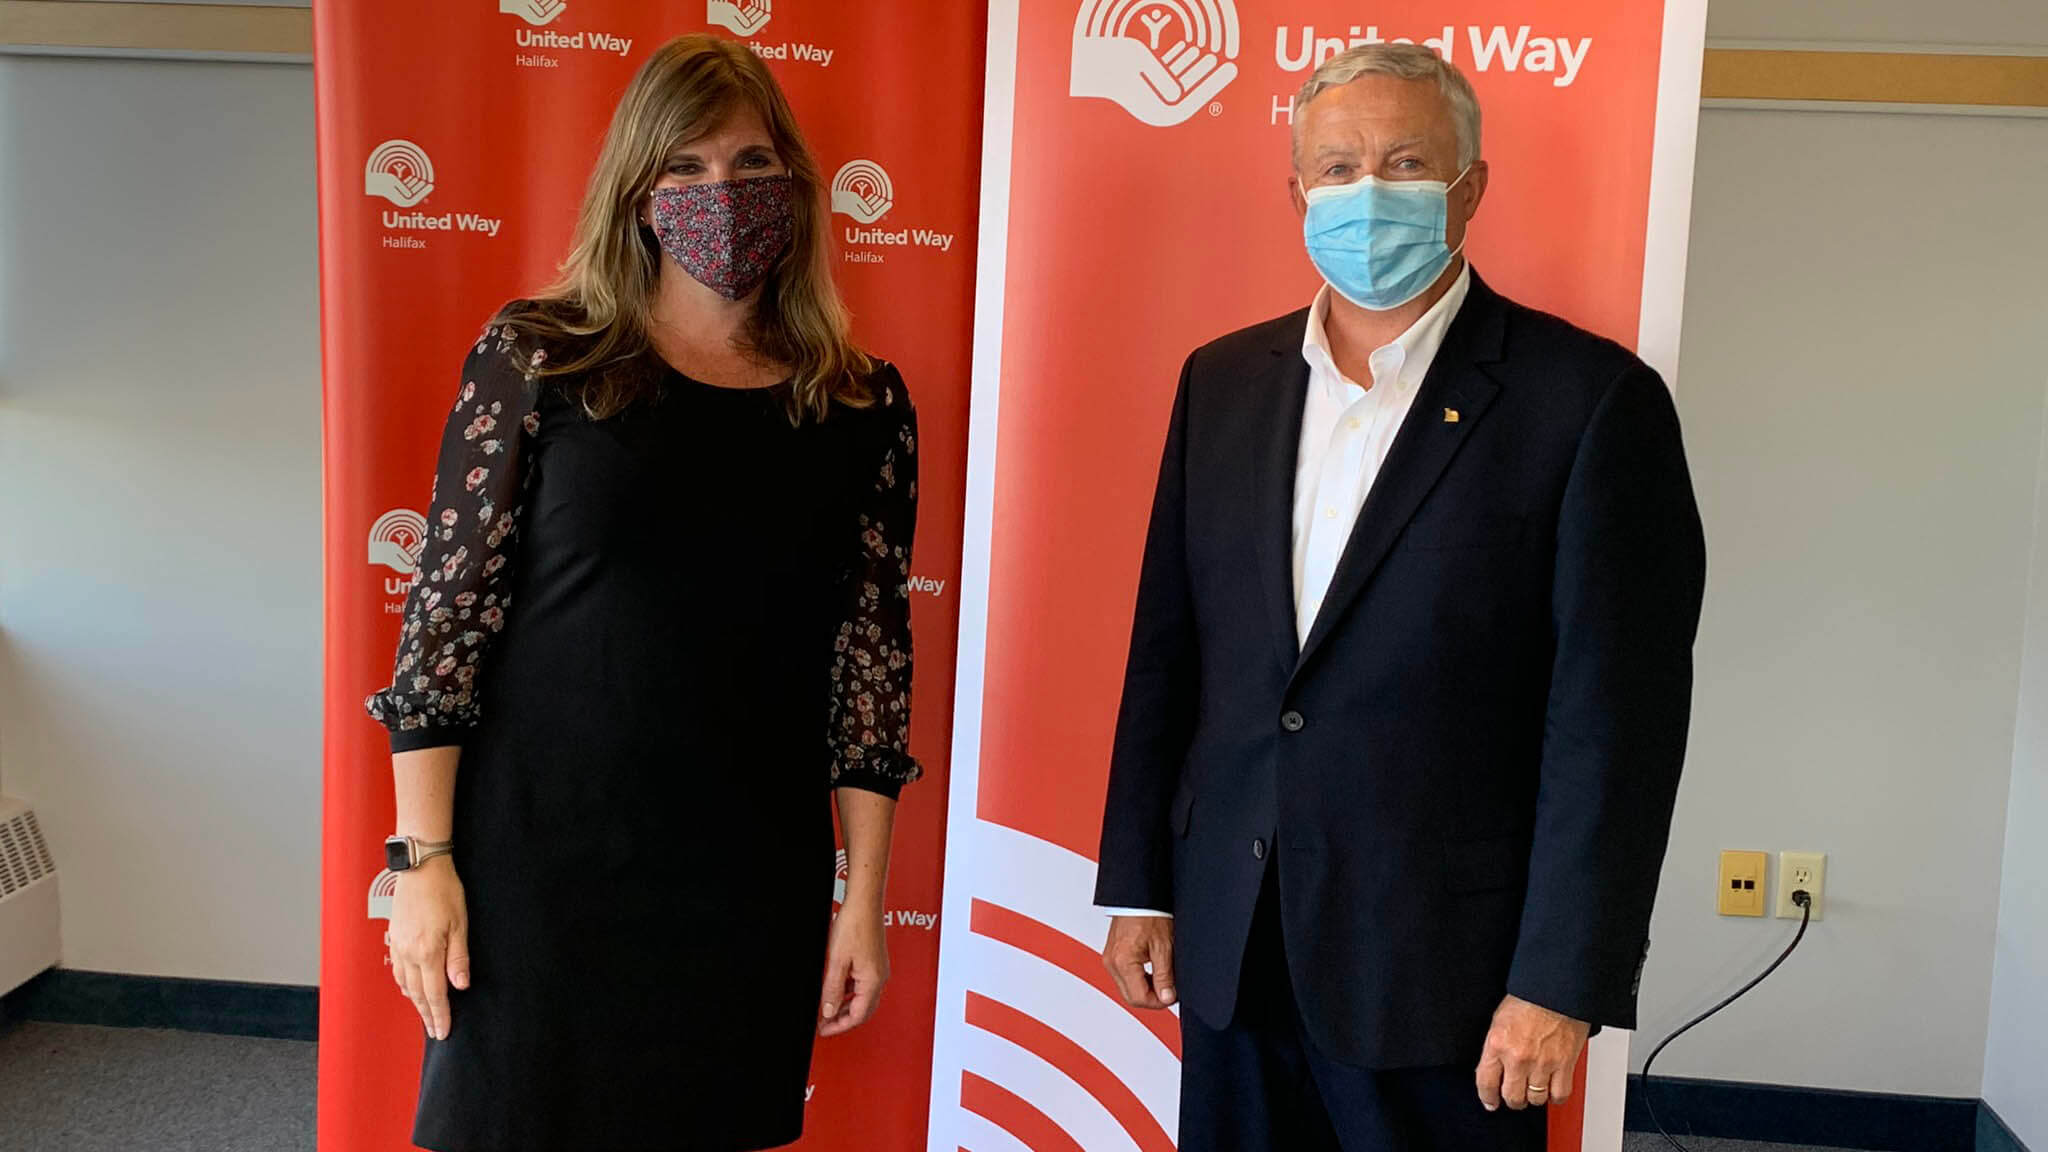 United Way Halifax CEO Sara Napier and Board Chair Craig Thompson stand, wearing masks, in front of red United Way banners